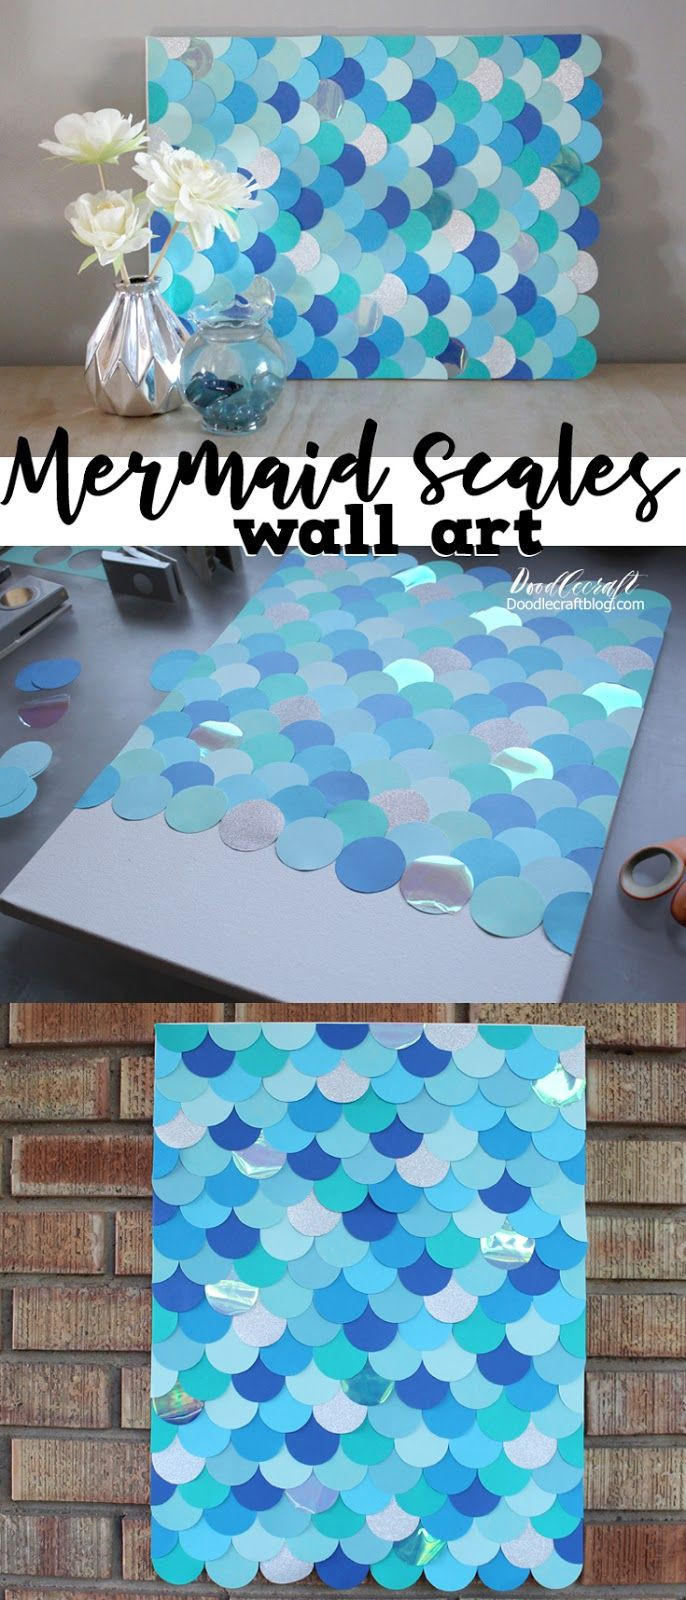 Best ideas about DIY Mermaid Room Decor . Save or Pin best Your Best DIY Projects images on Pinterest Now.